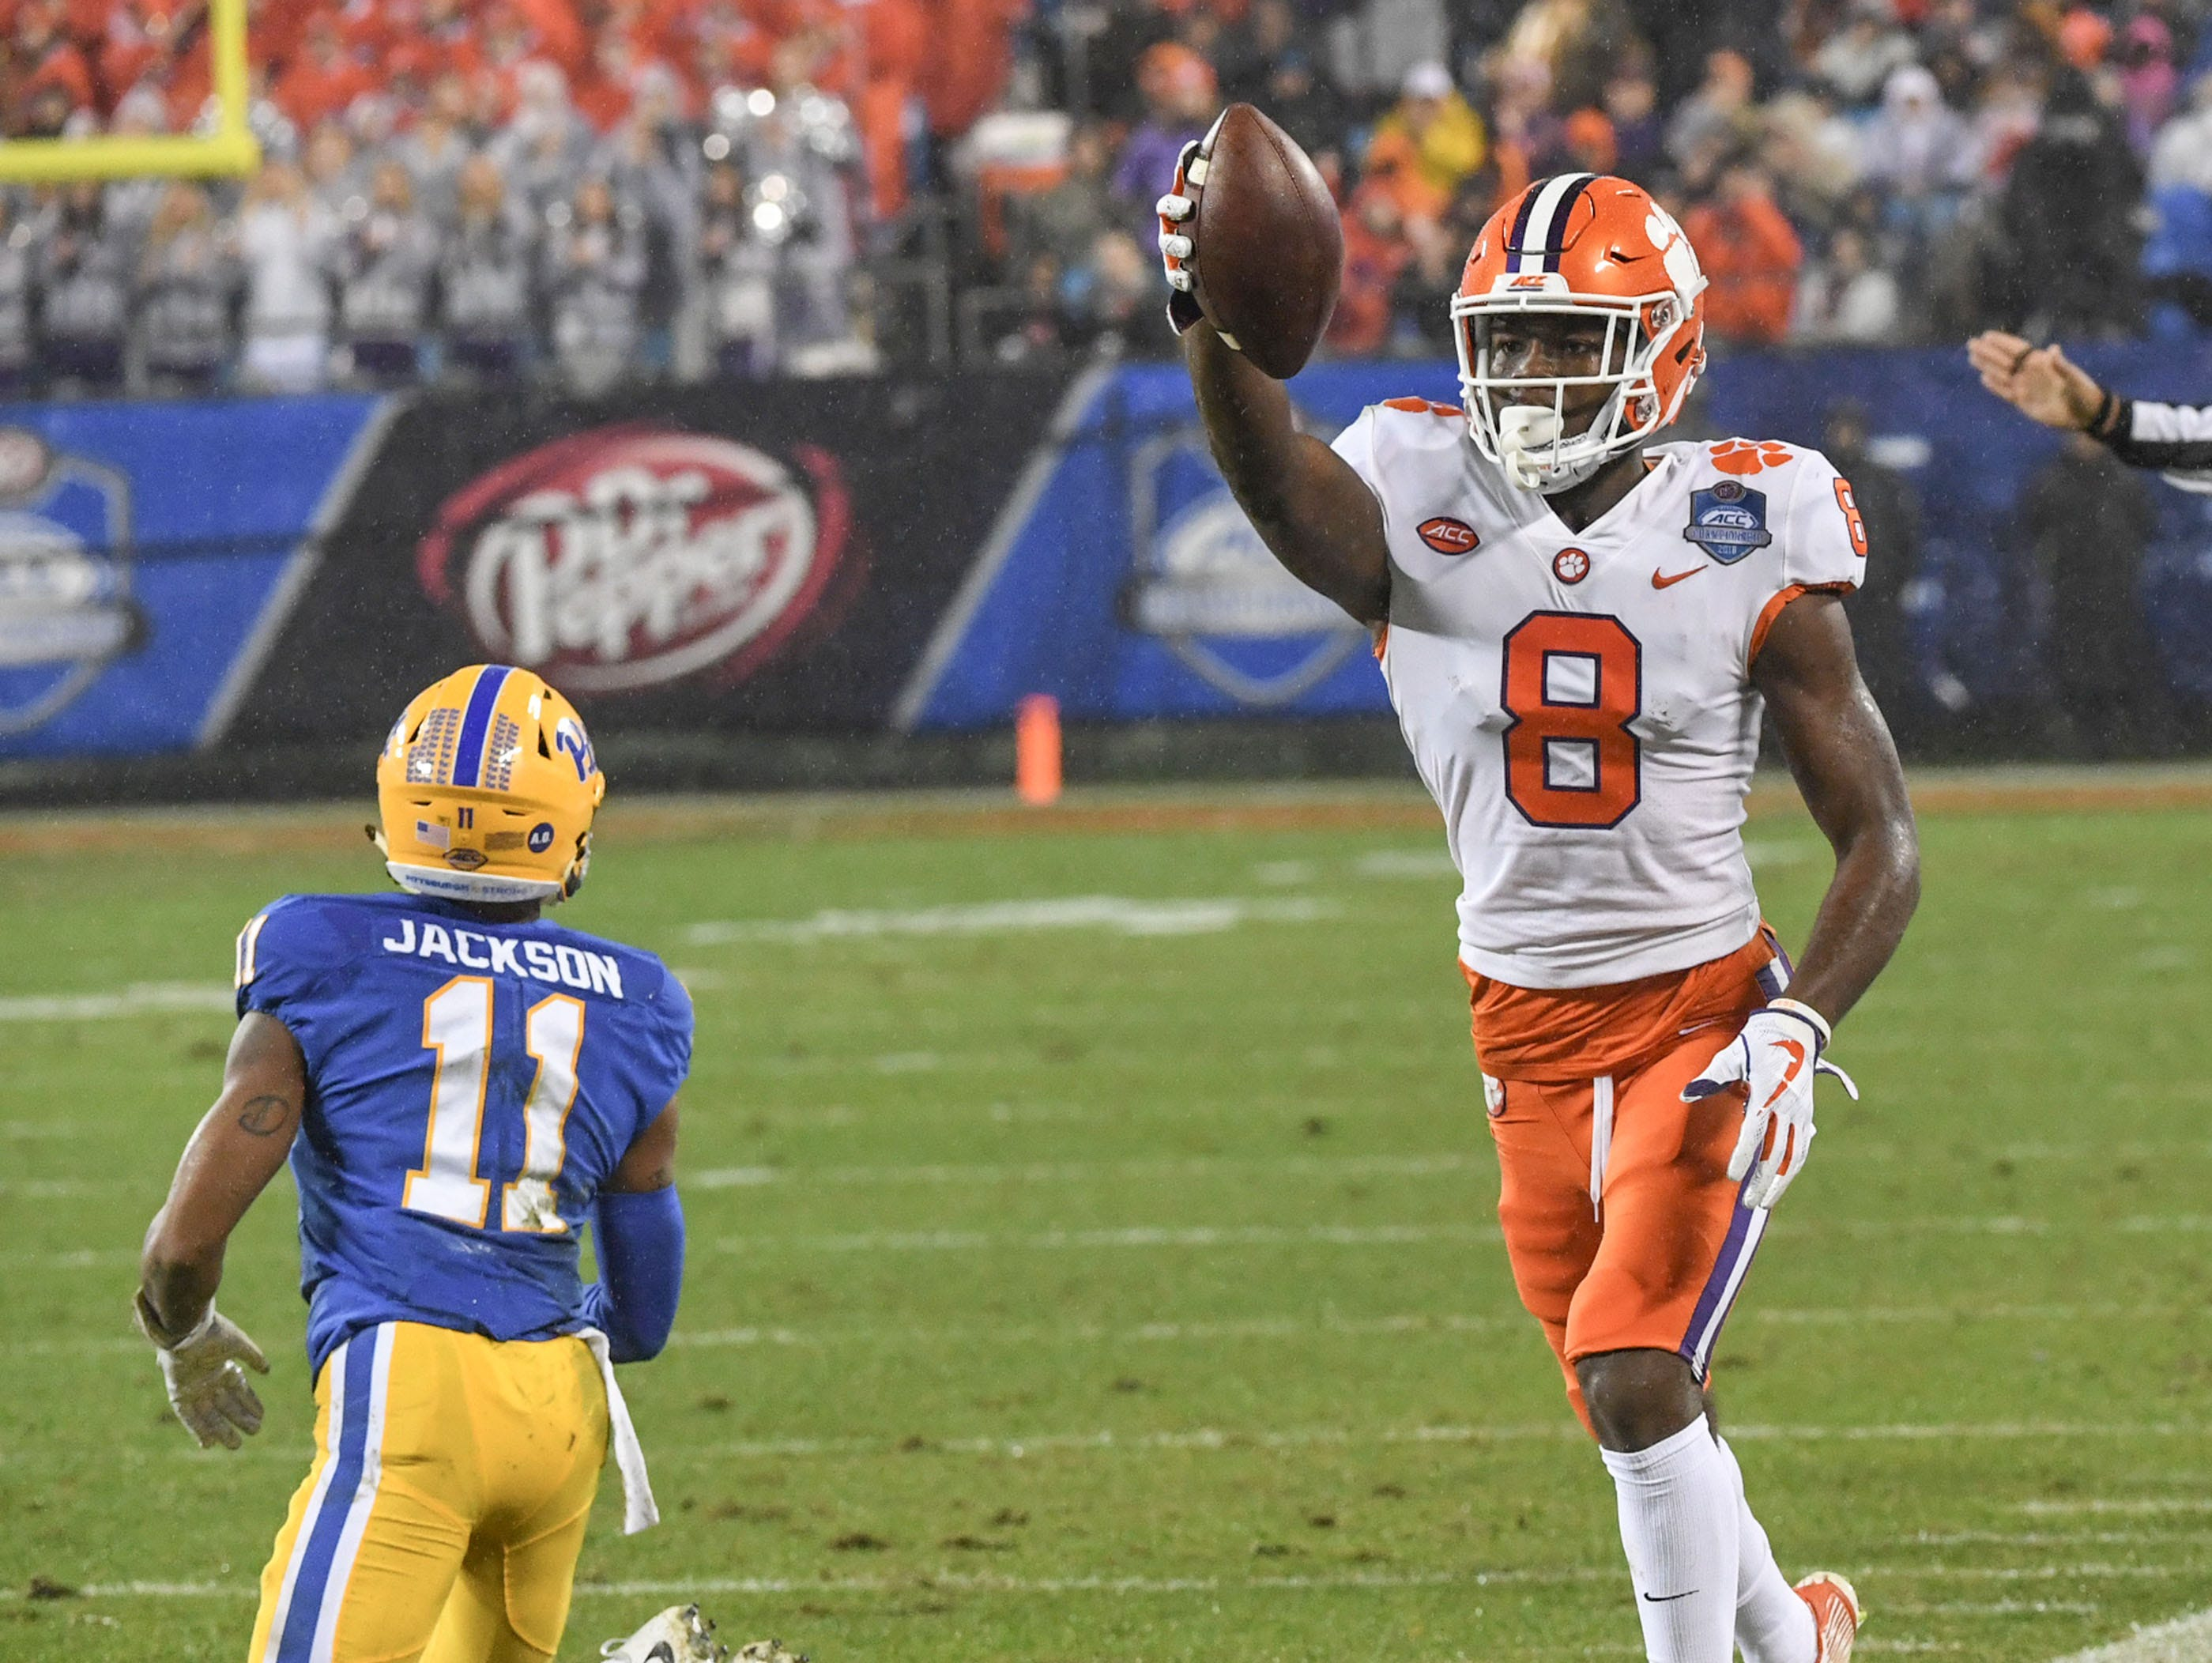 Clemson wide receiver Justyn Ross (8) gets a first down near Pittsburgh receiver Taysir Mack(11) during the first quarter of the Dr. Pepper ACC football championship at Bank of America Stadium in Charlotte, N.C. on Saturday, December 1, 2018.